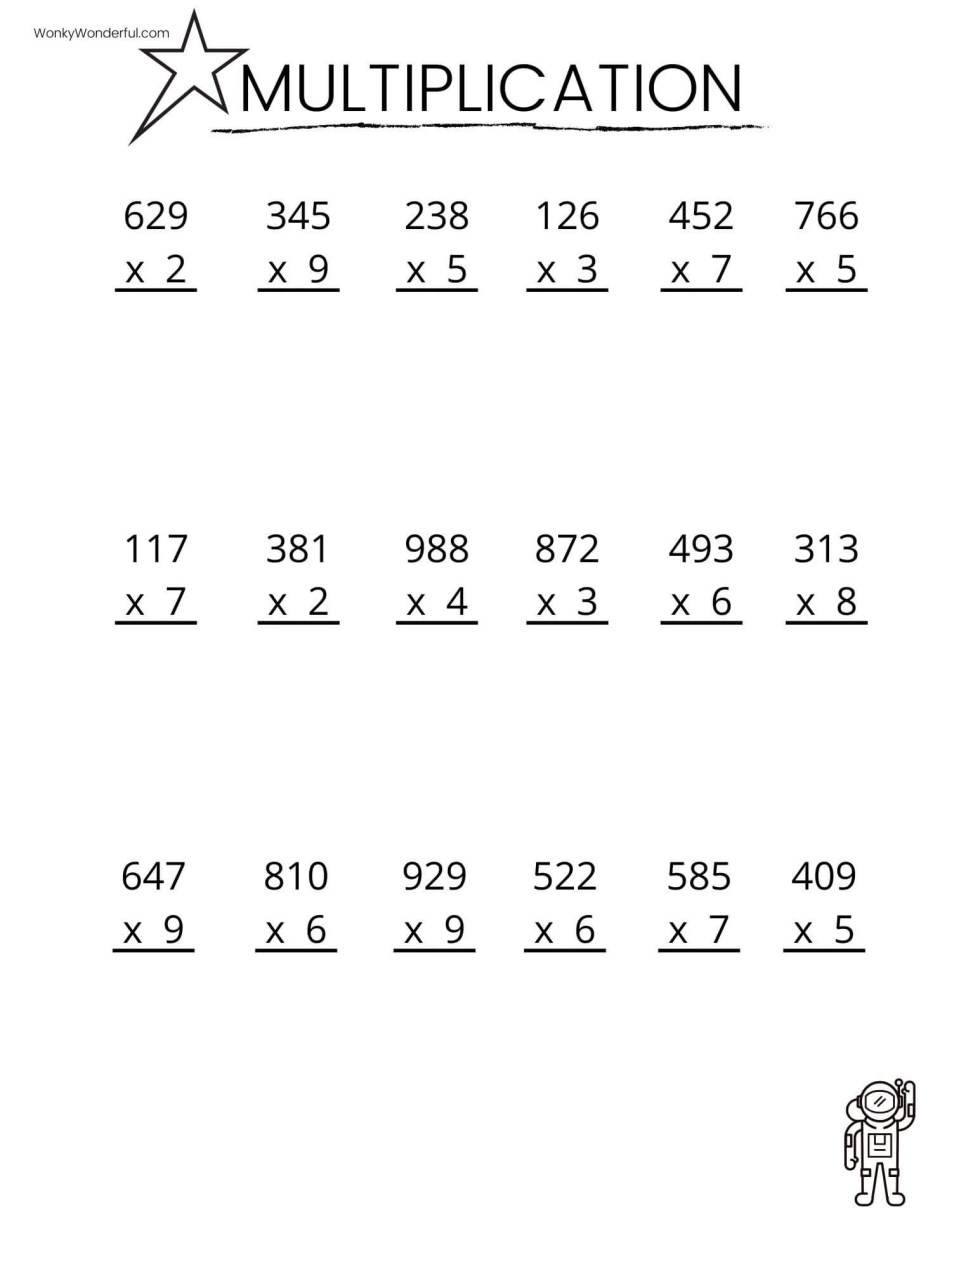 3rd multiplication worksheet